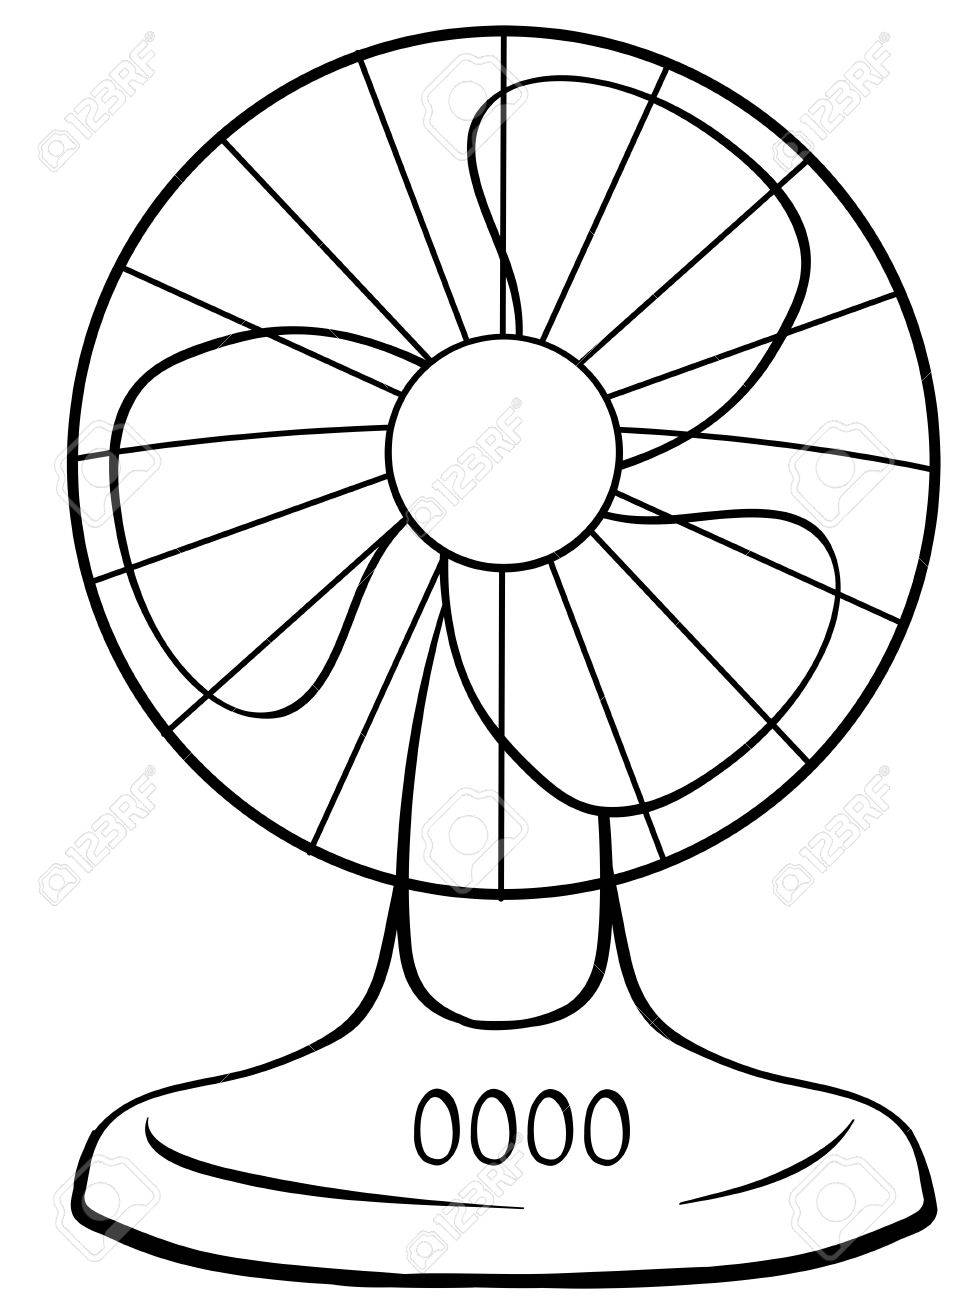 close up electric fan with buttons royalty free cliparts vectors rh 123rf com fun clipart for kids fun clip art for work